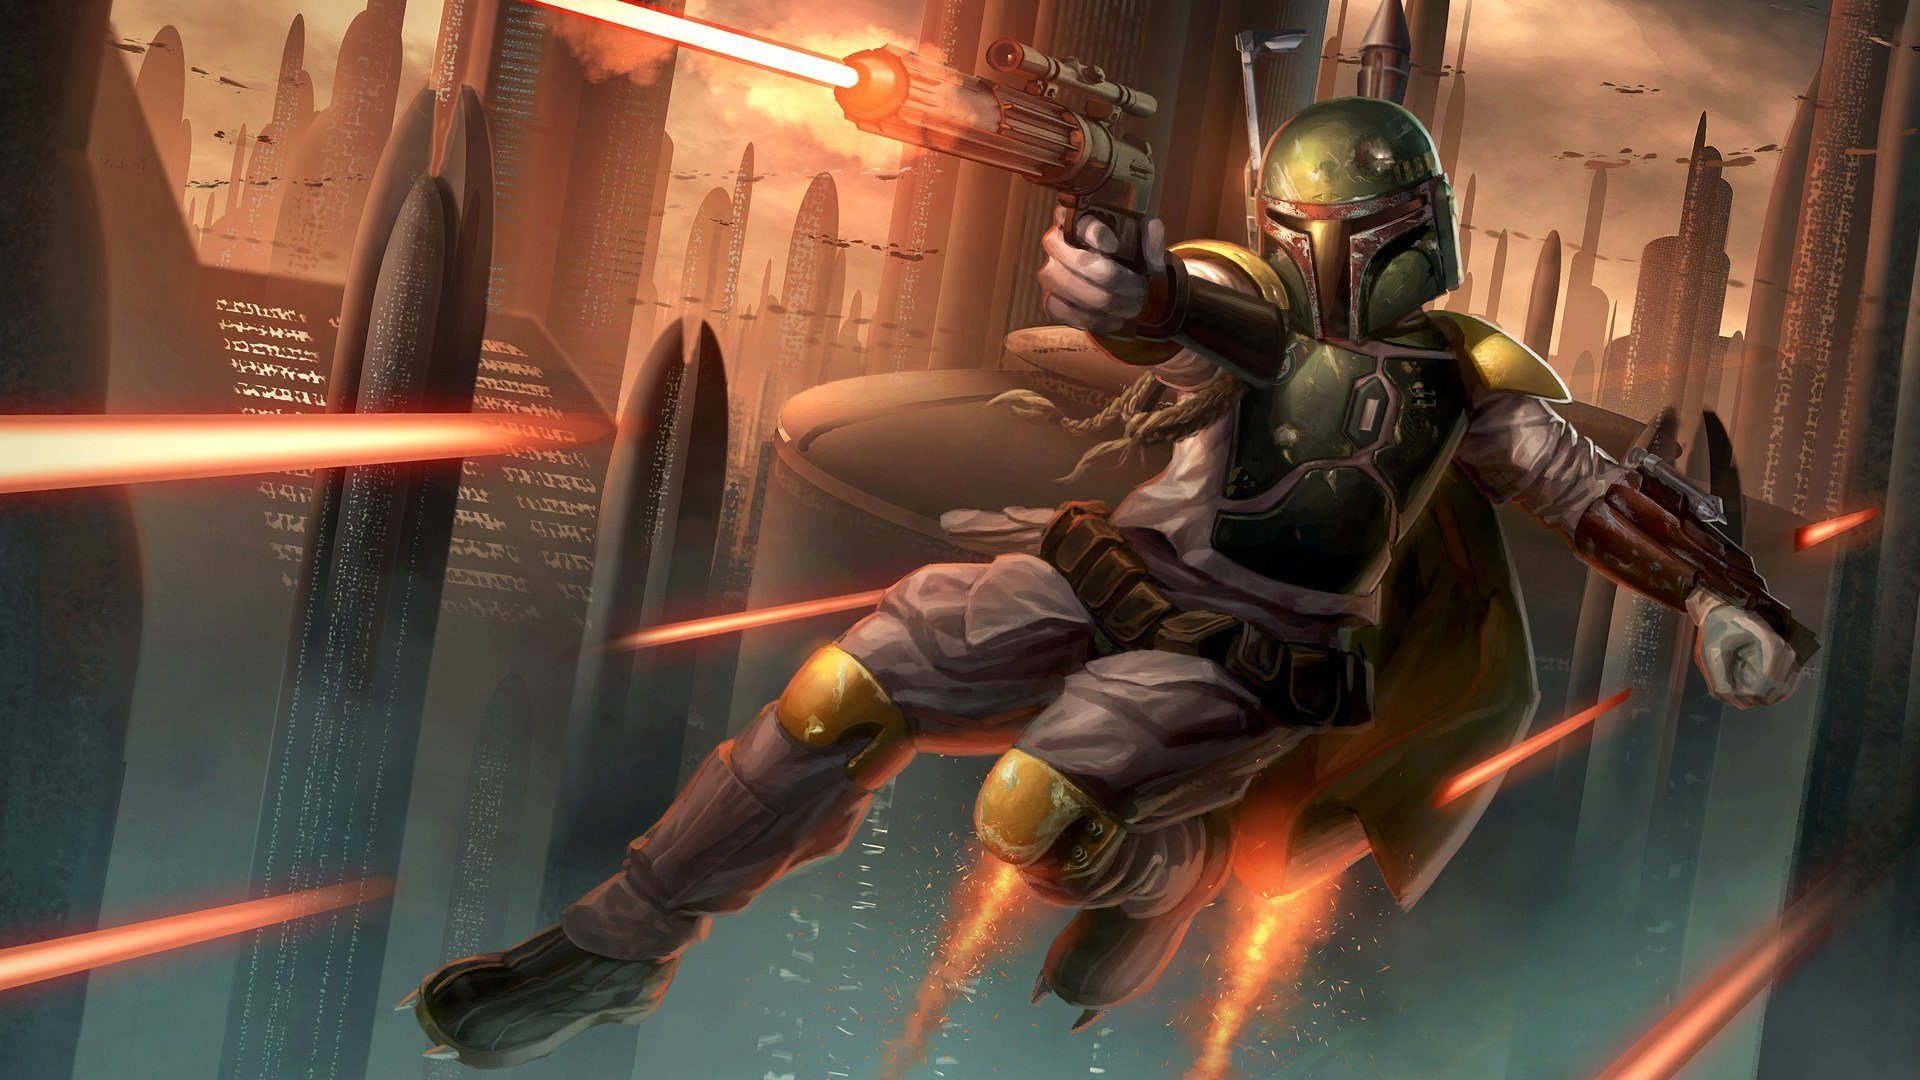 Free Download Boba Fett Star Wars Hd Wallpaper Background 35439 Wallur 1920x1080 For Your Desktop Mobile Tablet Explore 38 Star Wars Boba Fett Background Star Wars Boba Fett Background